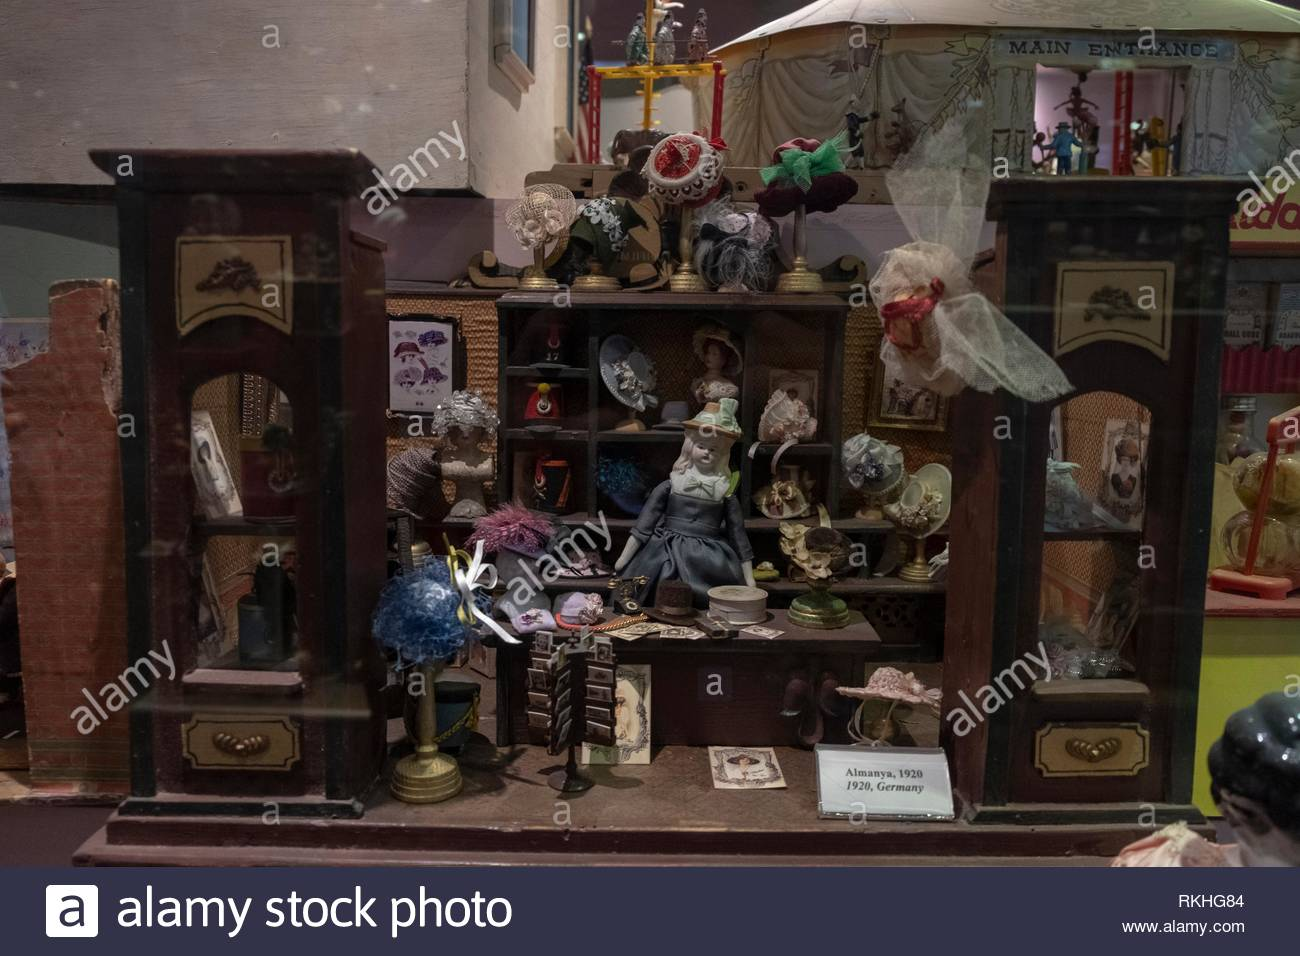 Vintage Dollhouse 1920 a German hat shop Stock Photo  235799204 - Alamy a6f39f6736f